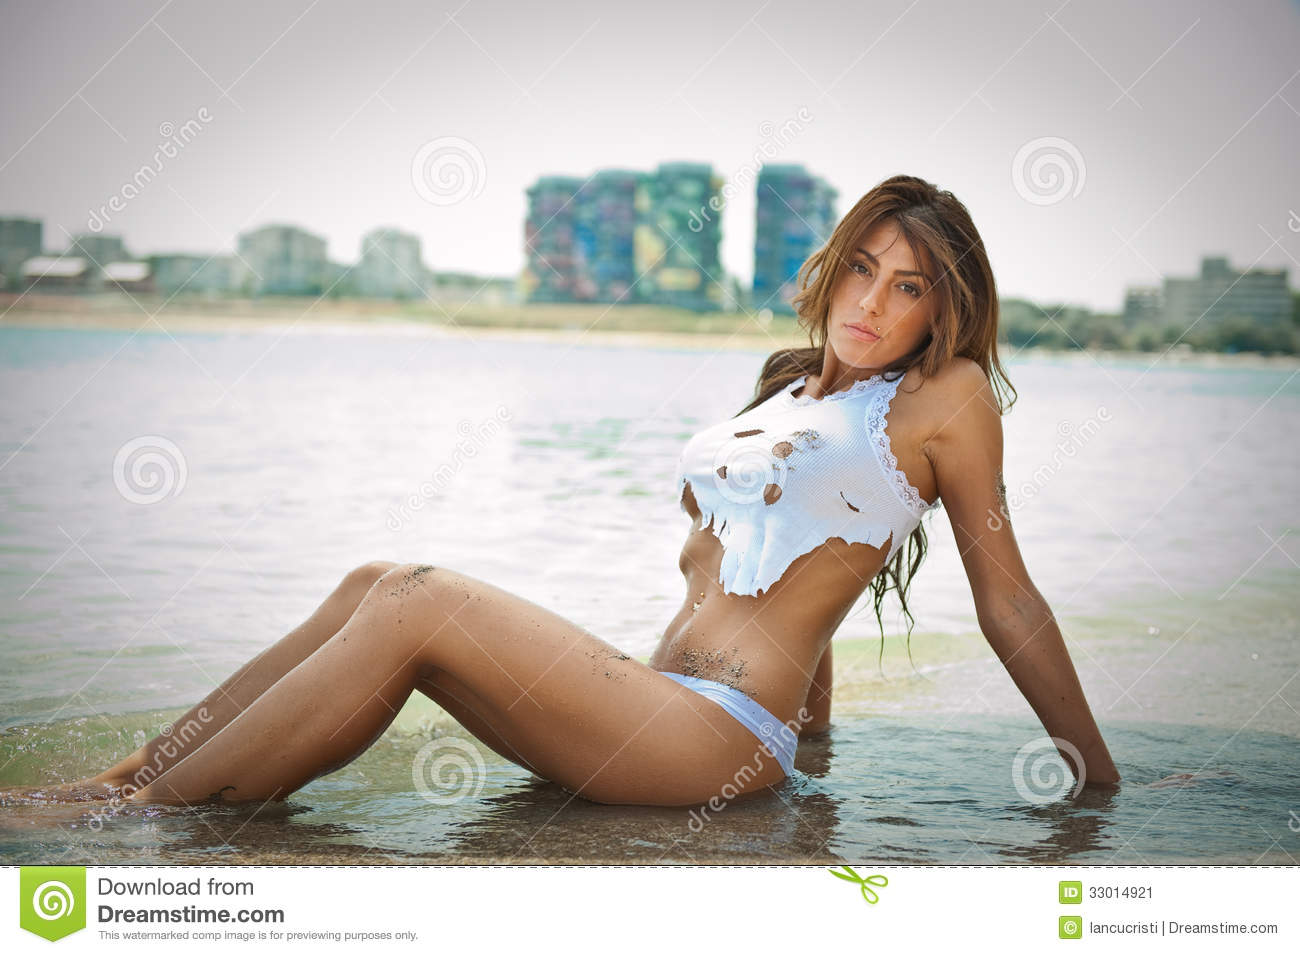 portrait of young brunette girl in white bikini and wet t-shirt at